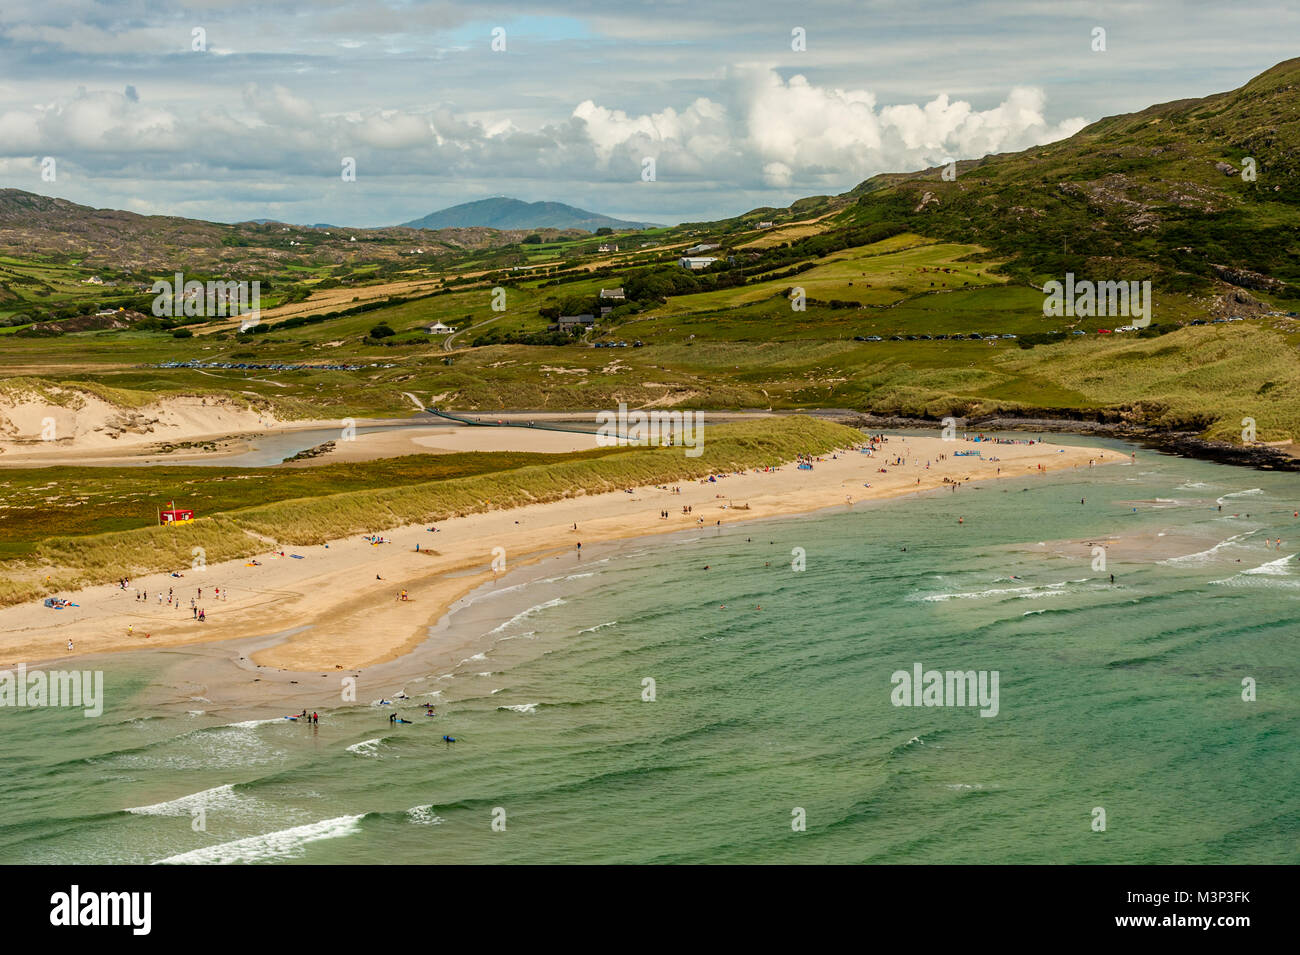 Barleycove Beach, County Cork, Ireland taken from an elevated position with Mount Gabriel in the background and Stock Photo